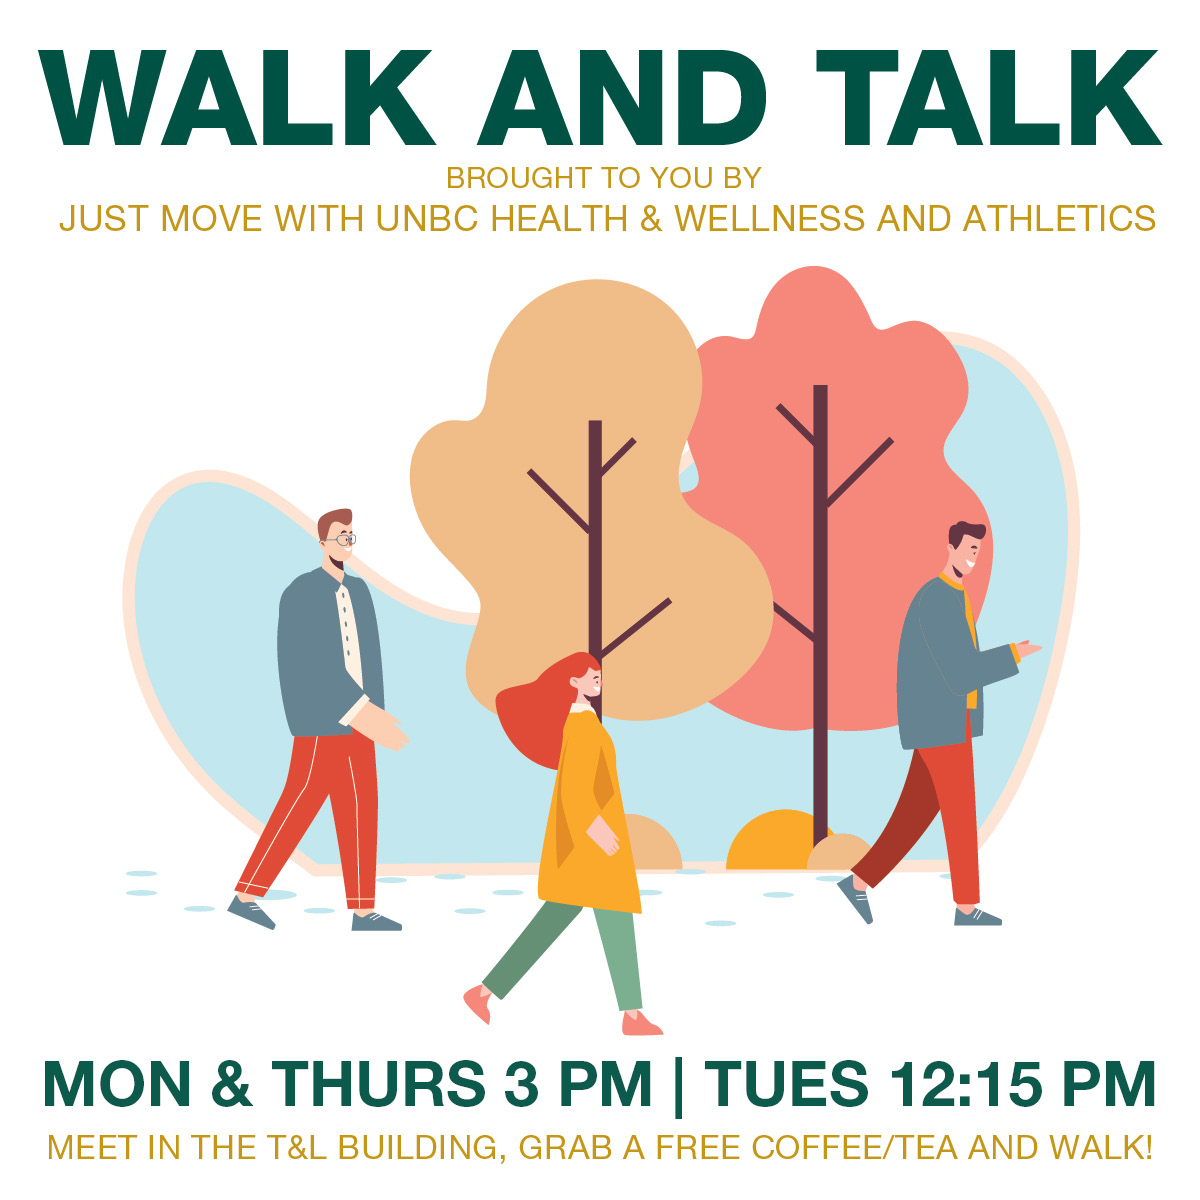 Walk and talk poster